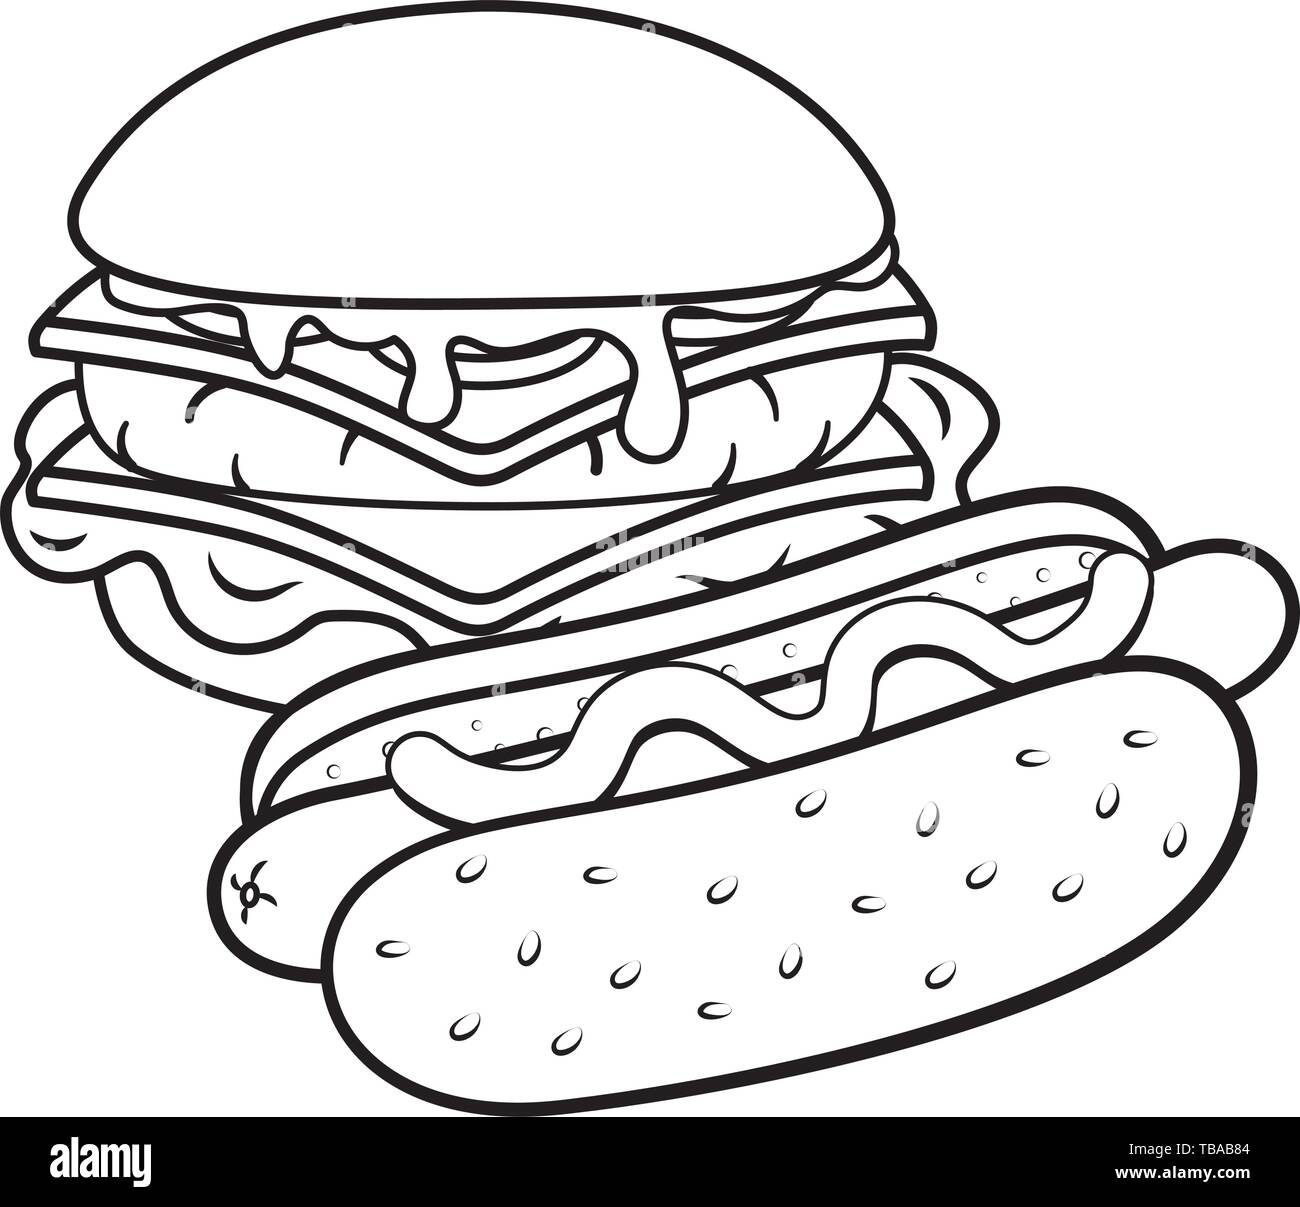 Hamburger And Hot Dog With Sauce Icon Cartoon Black And White Vector Illustration Graphic Design Stock Vector Image Art Alamy